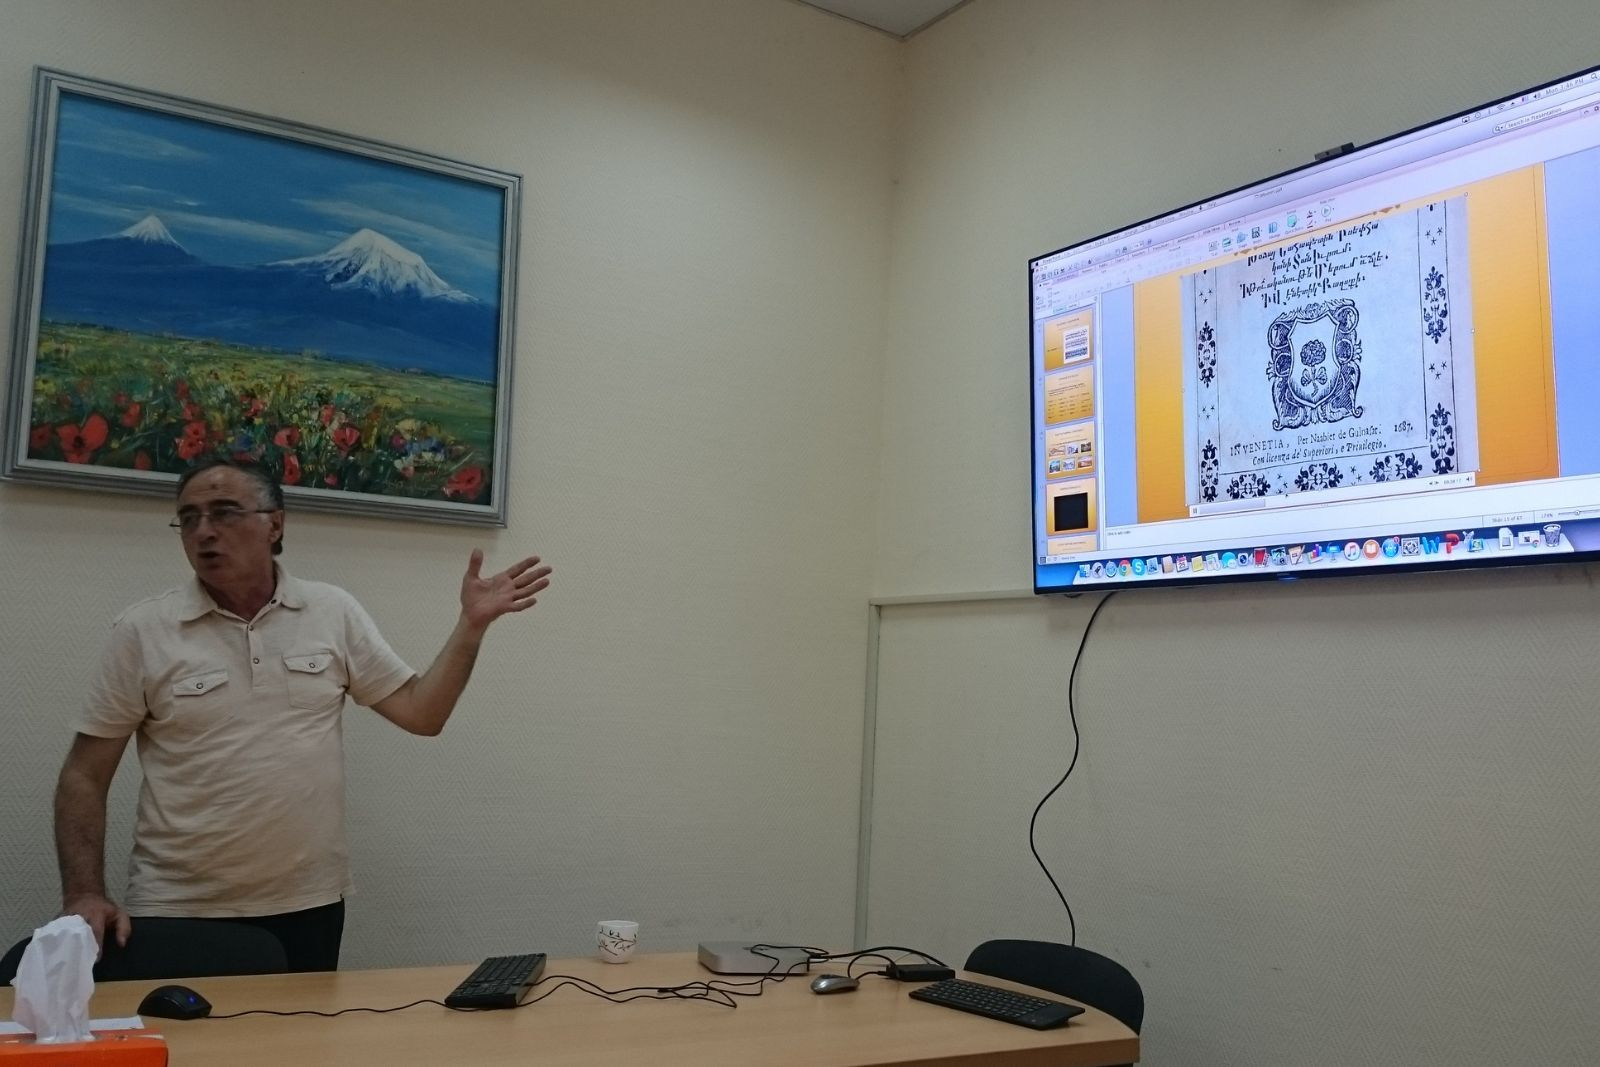 Merujan Karapetyan is presenting digilib.am to the participants of Armenian Studies summer school 2016